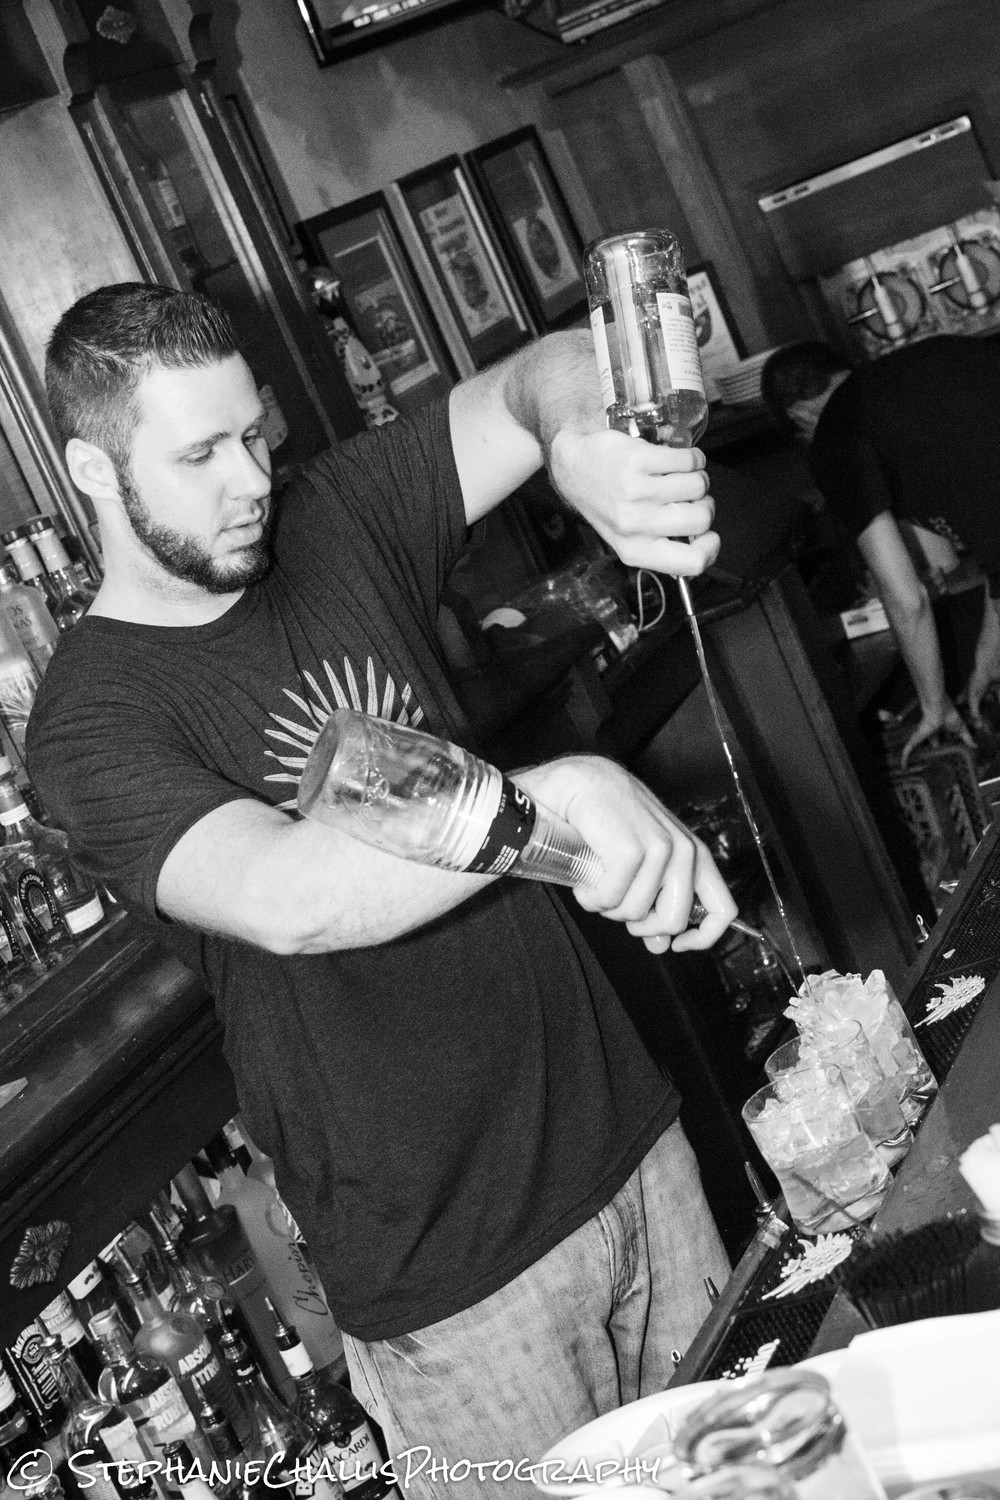 Terry pourin' up some margaritas behind the bar!